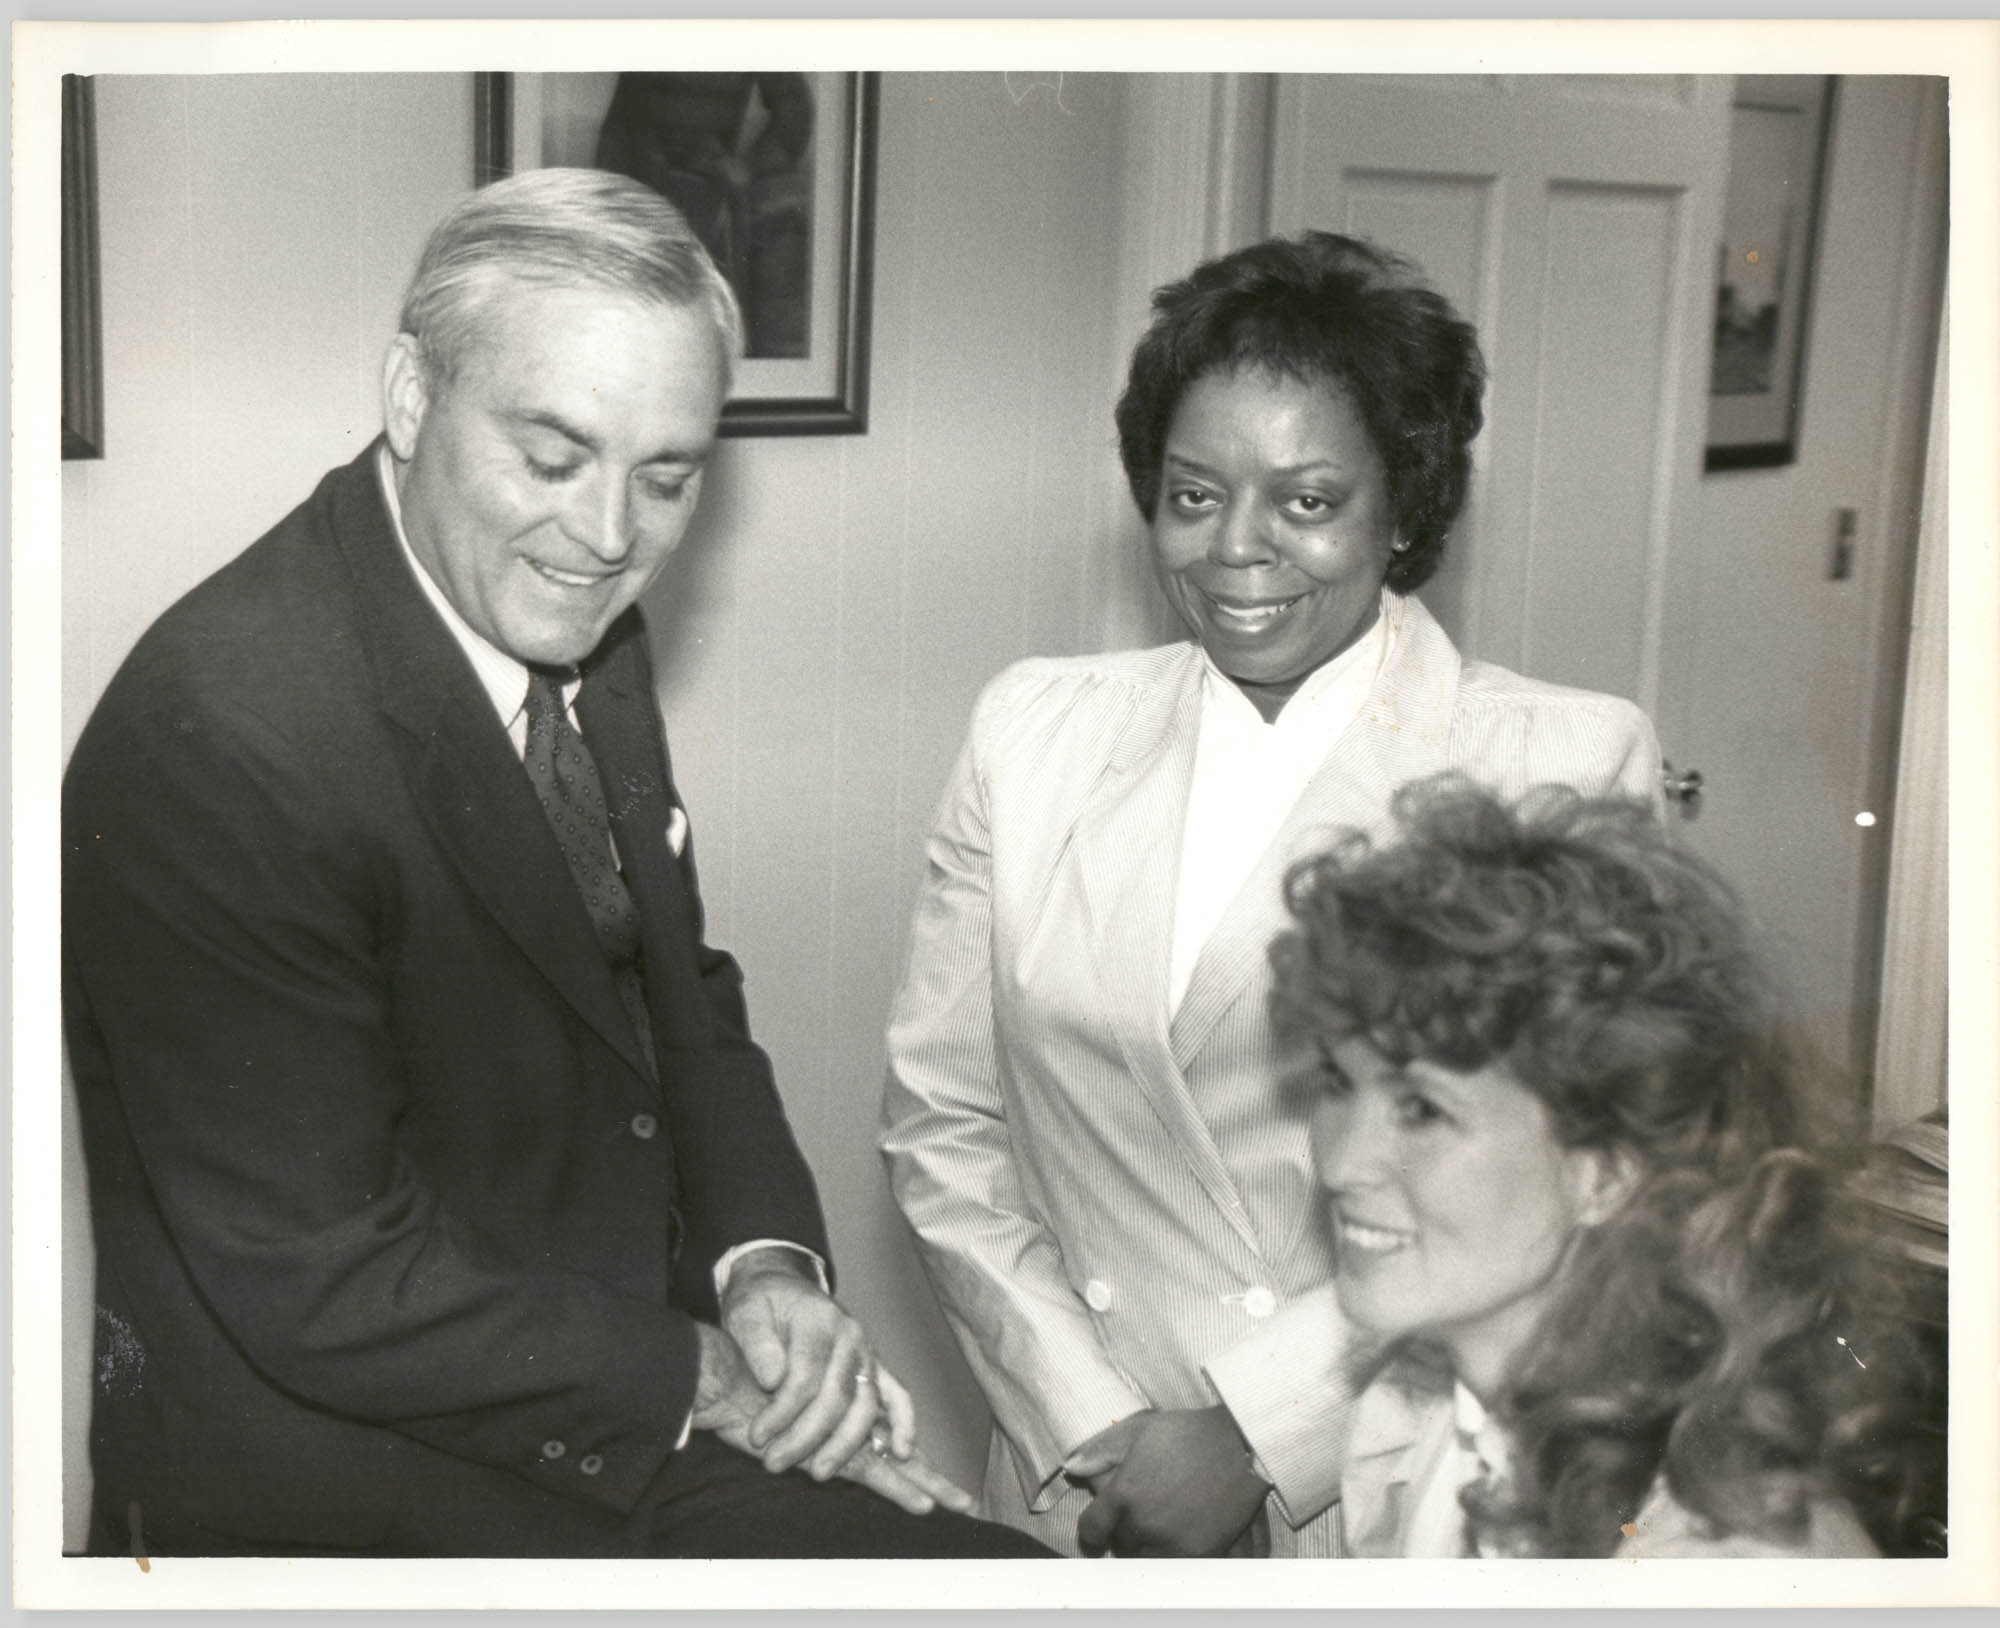 Photograph of Two Women and a Man